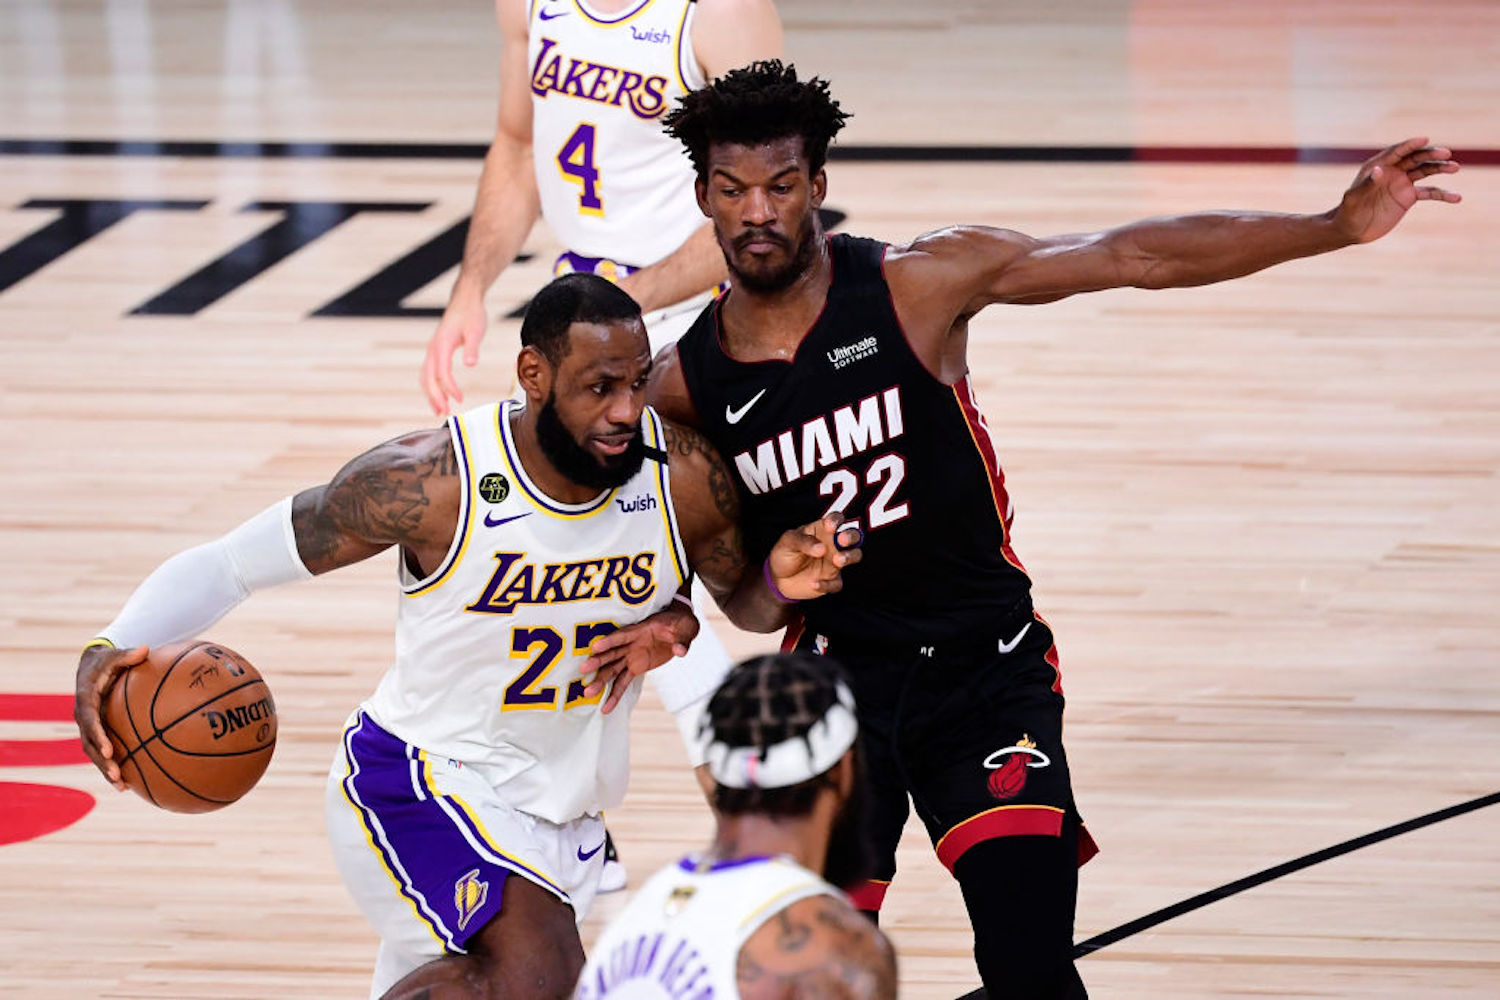 Jimmy Butler led the Miami Heat to an improbable Game 3 win Sunday night, and he wasn't afraid to talk trash to LeBron James afterward.